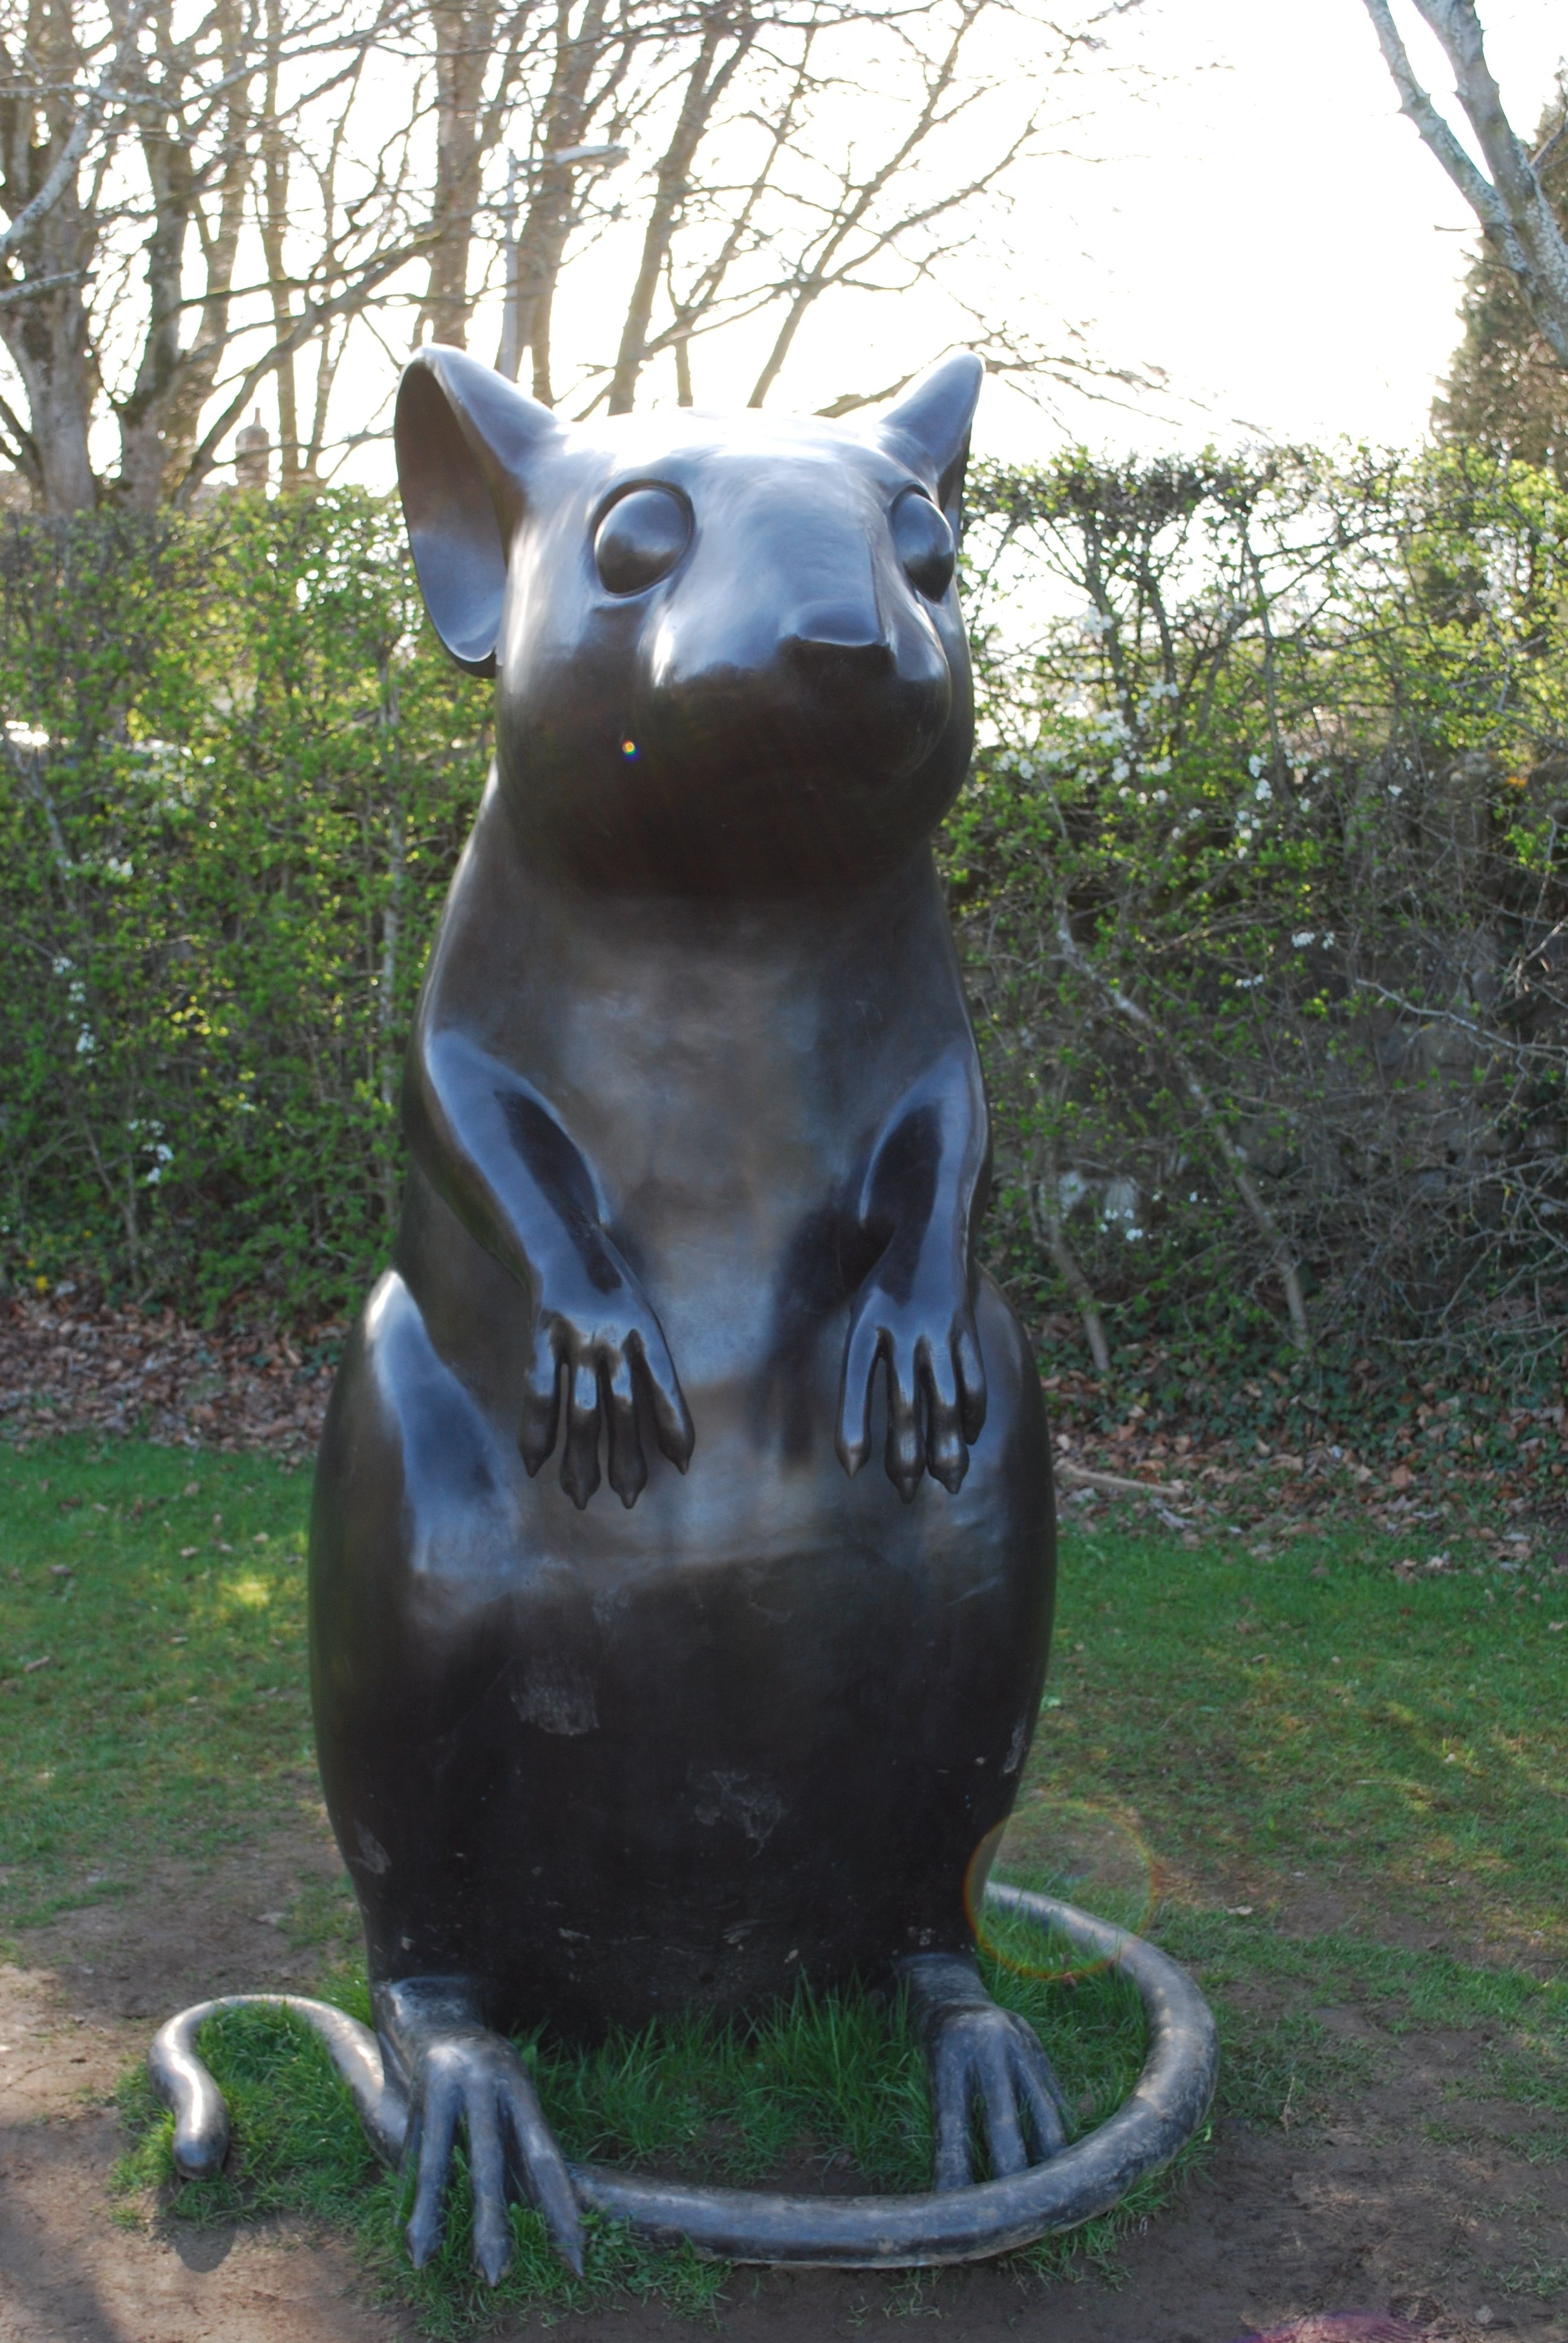 To a Mouse Statue